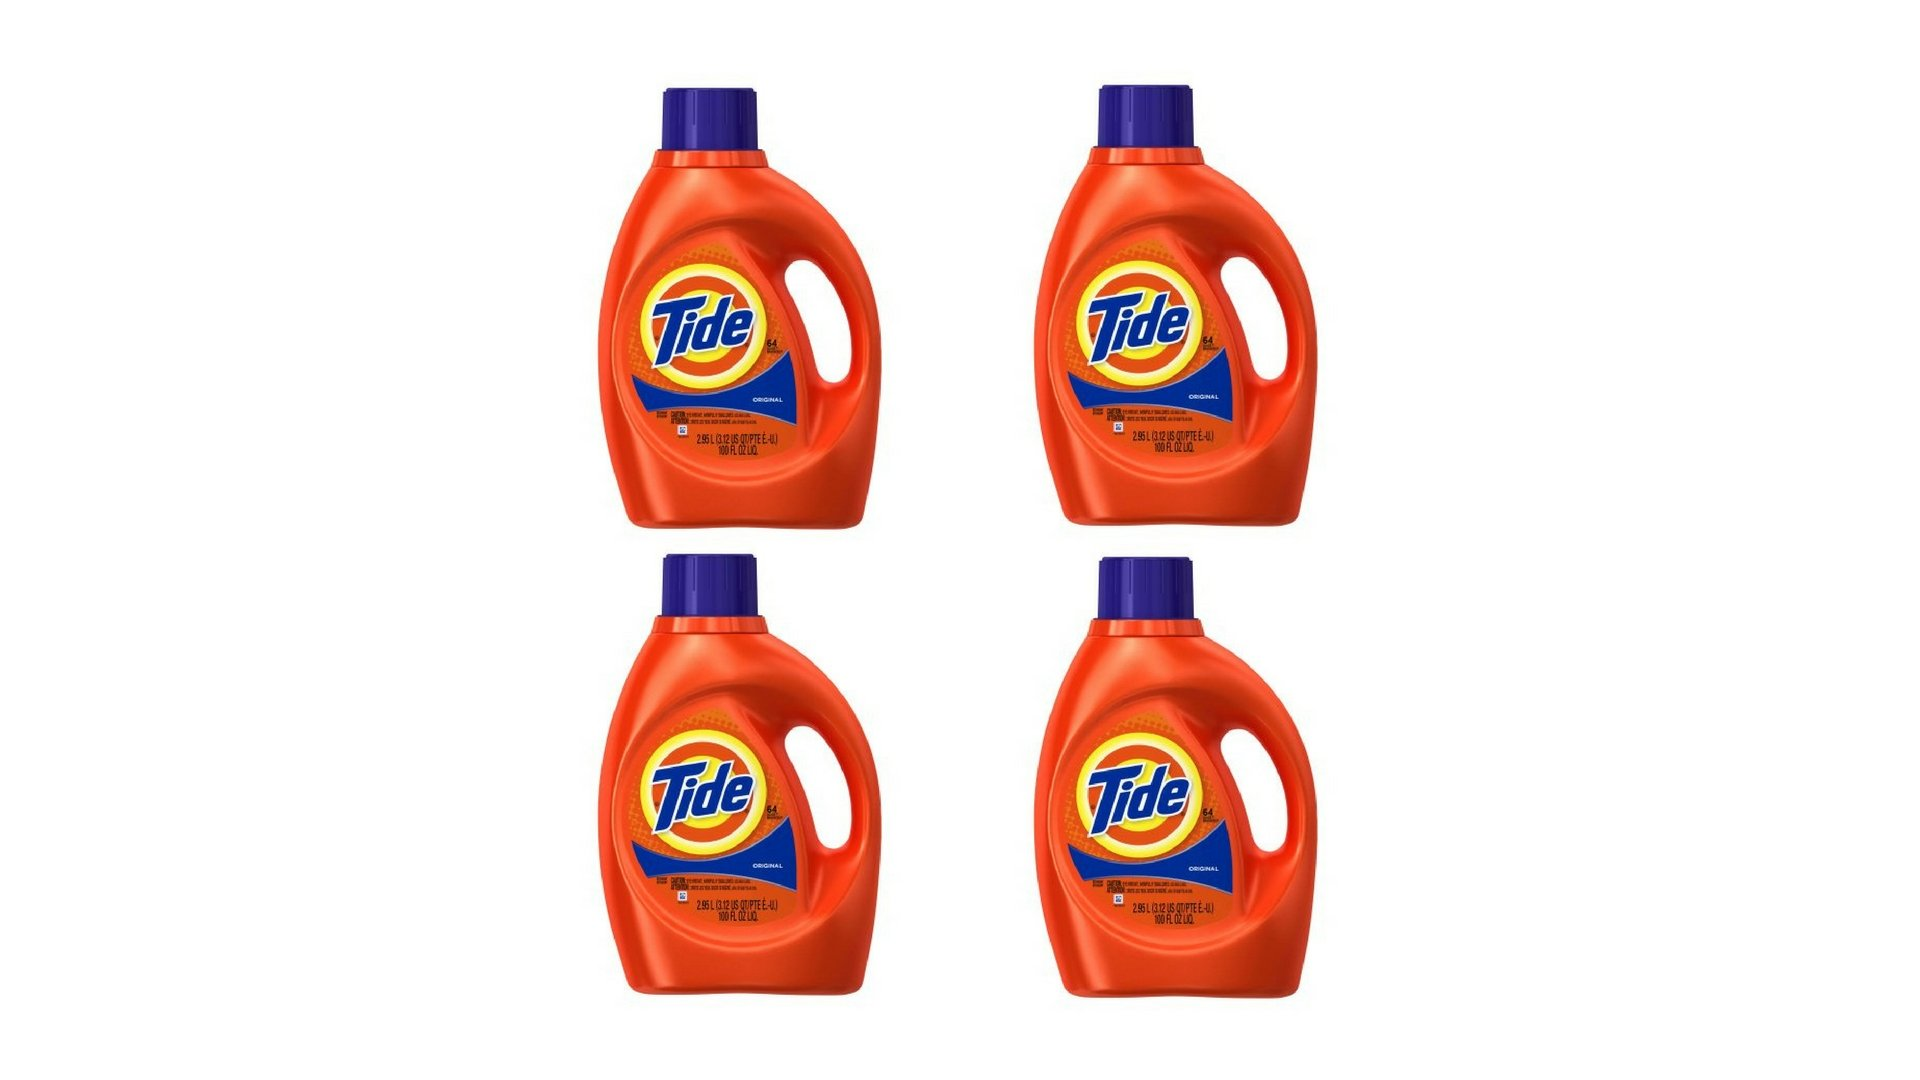 Original Scent Tide Liquid Laundry Detergent 100 fl oz per bottle set of 4